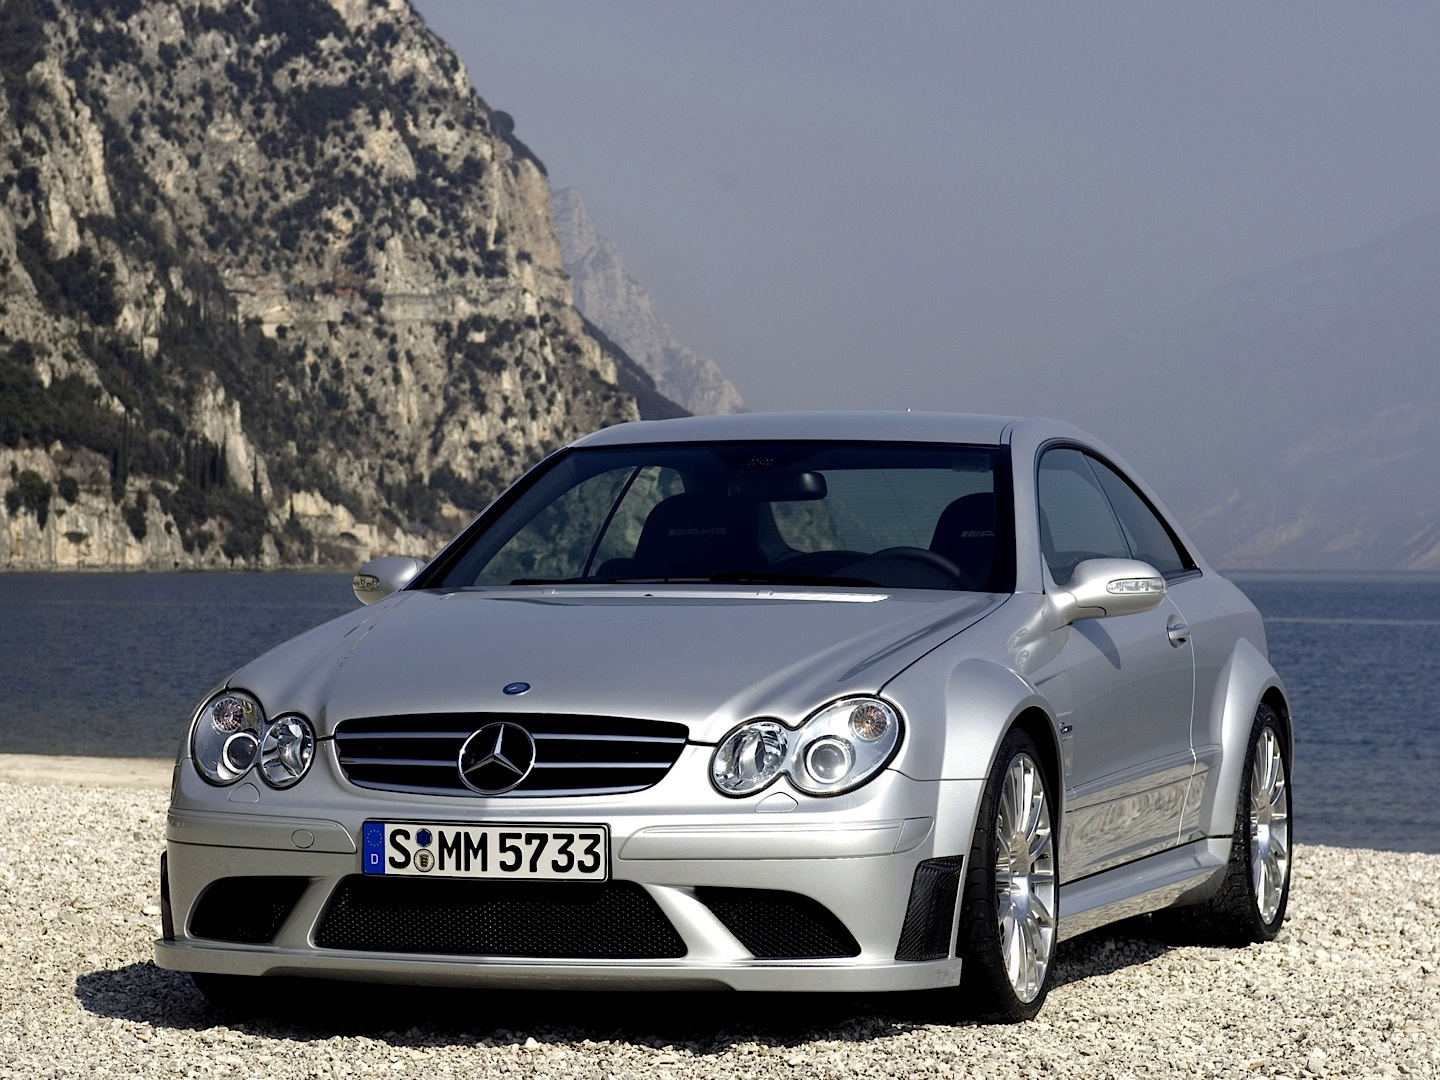 New black series vs old black series amg on the green hell for Mercedes benz clk63 amg black series